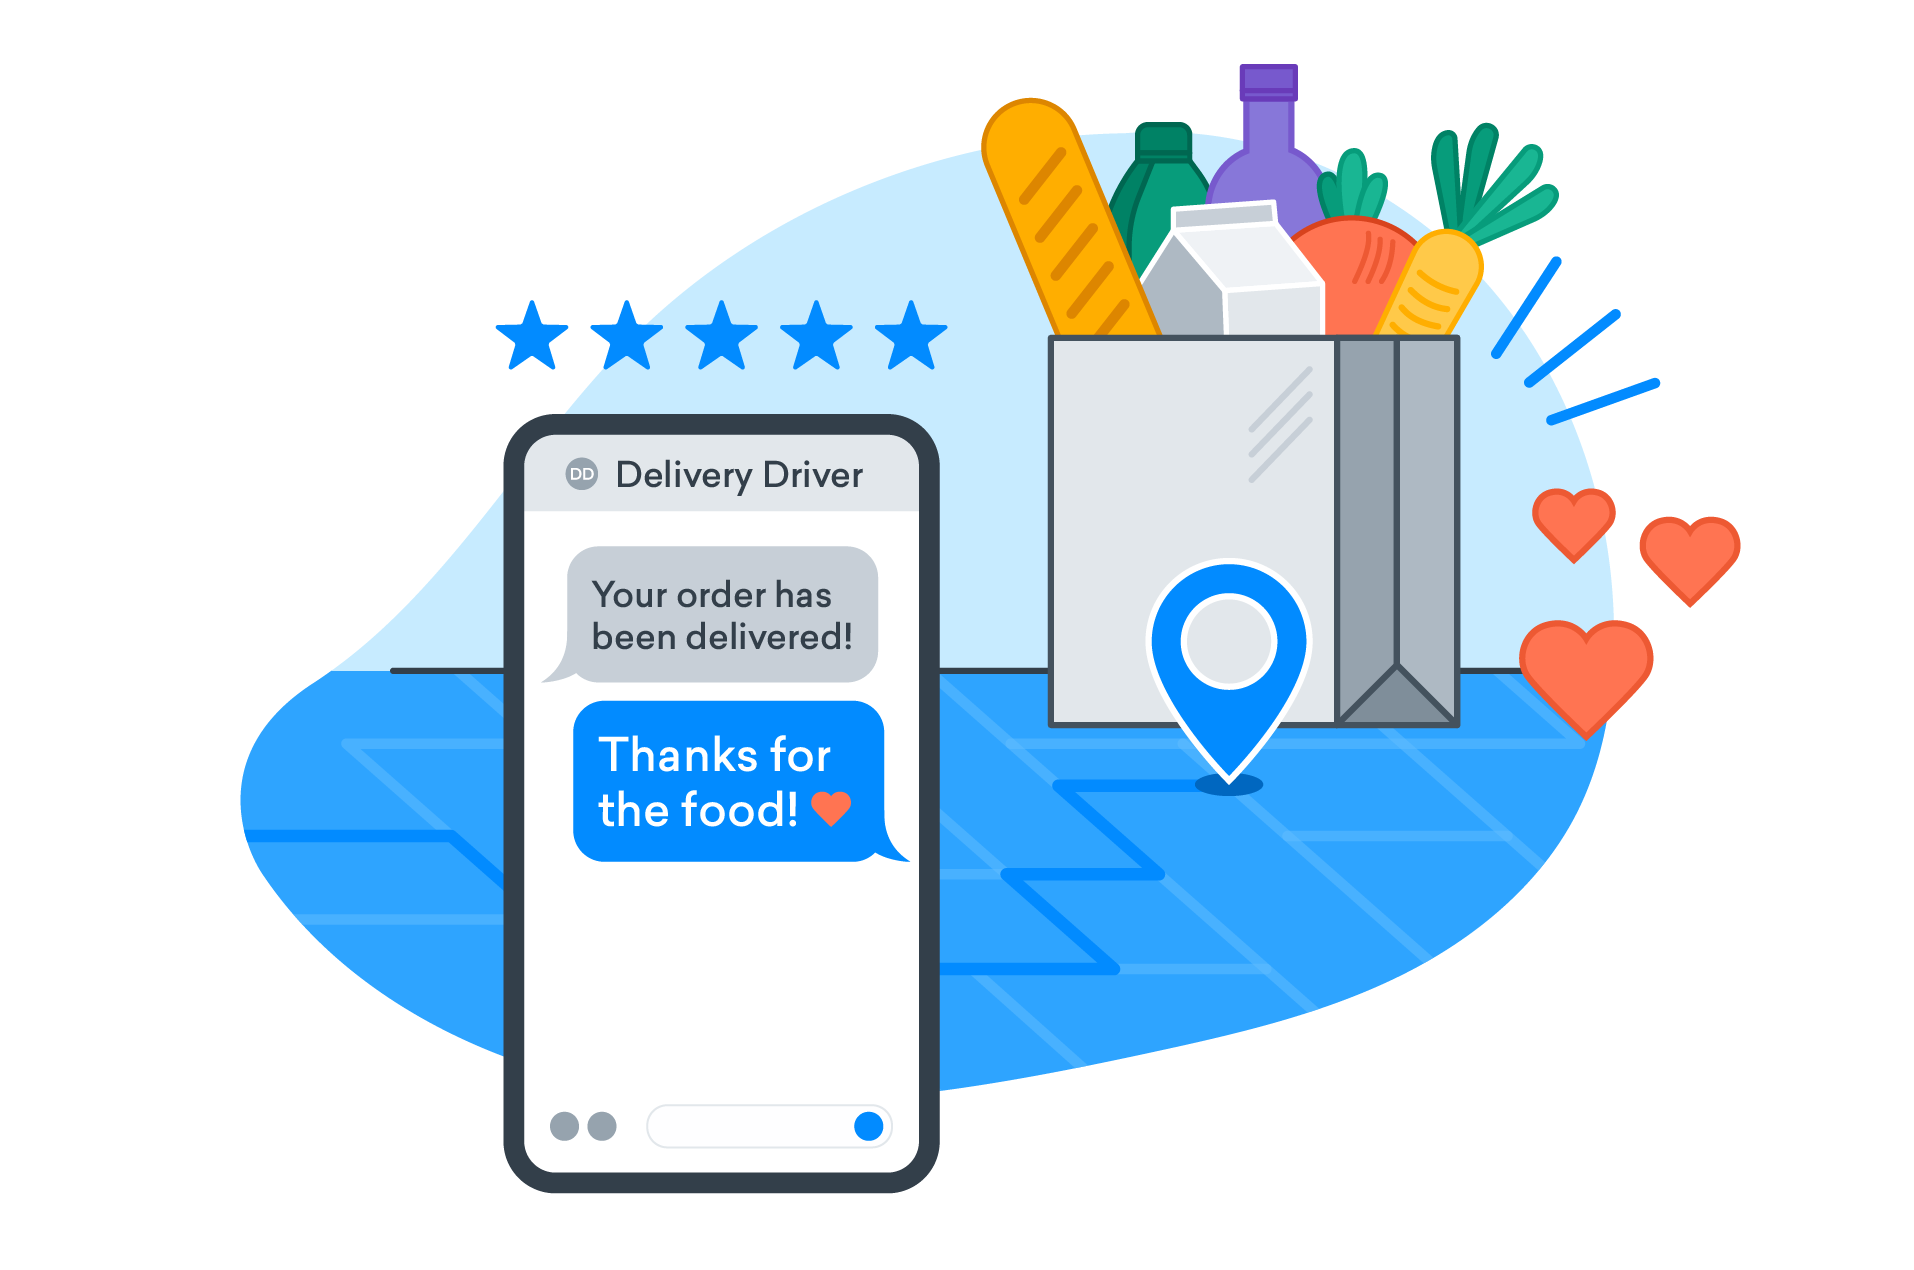 83% of Sharing Economy App Users Feel More Connected to their Communities